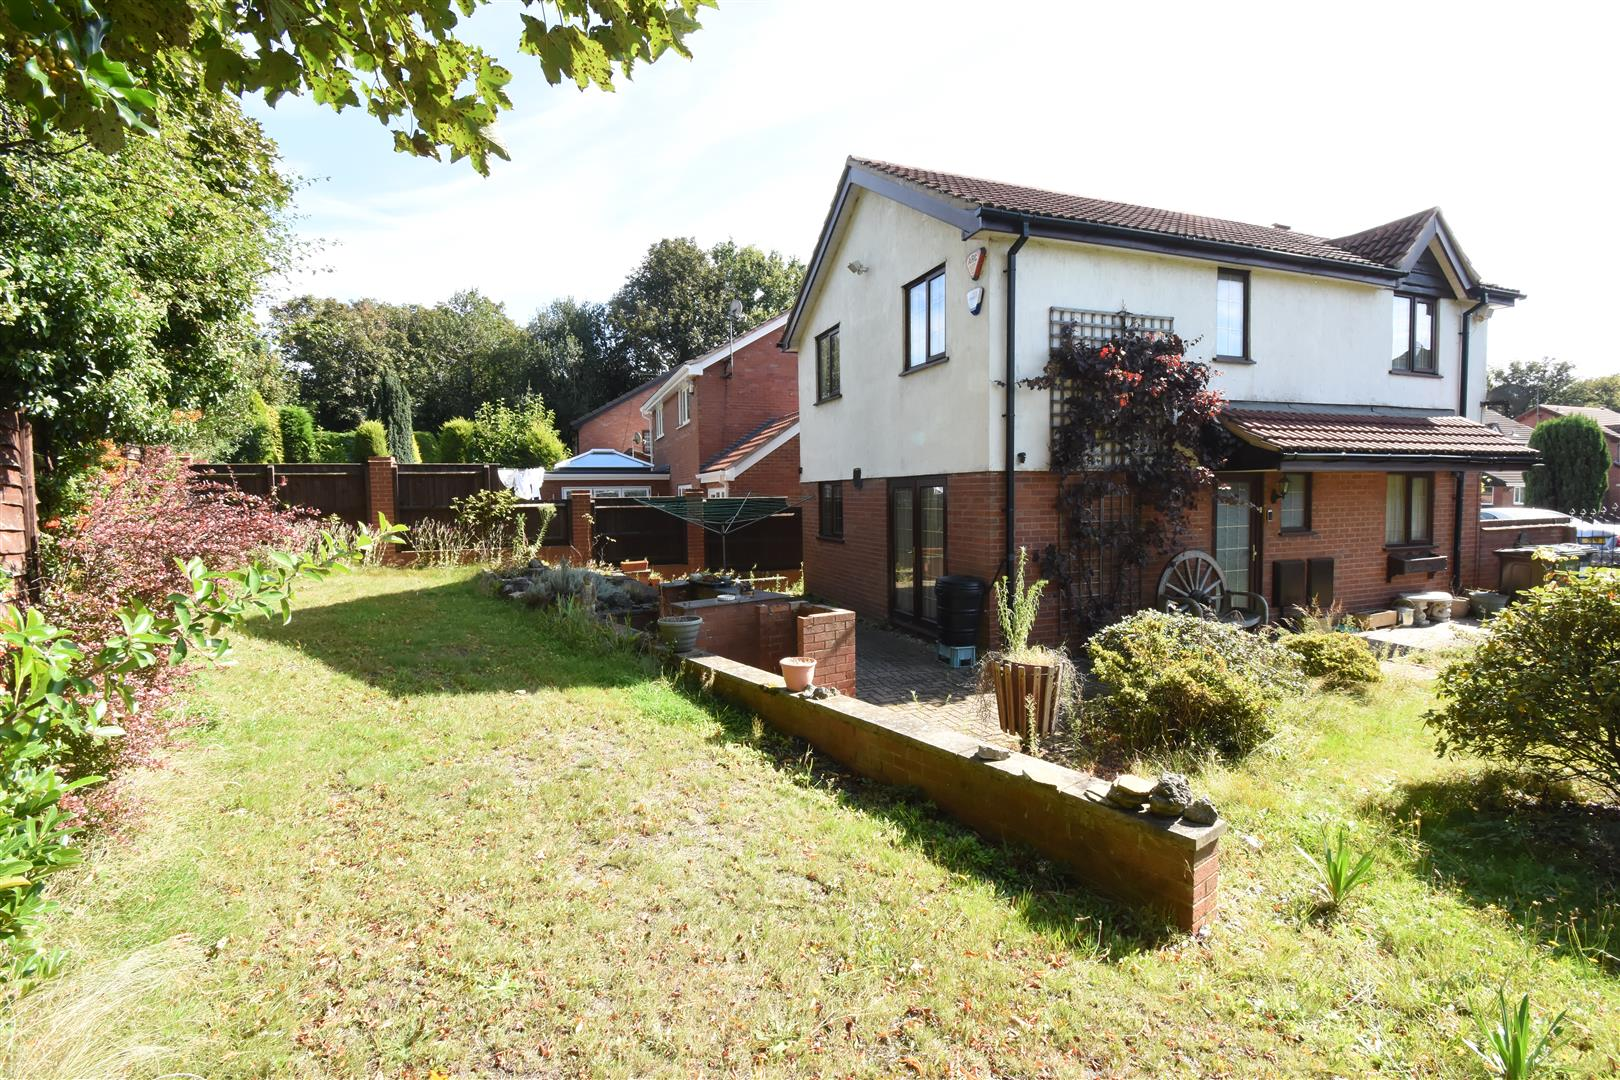 3 bed house for sale in Castle Hills Drive, Castle Bromwich, Birmingham 4